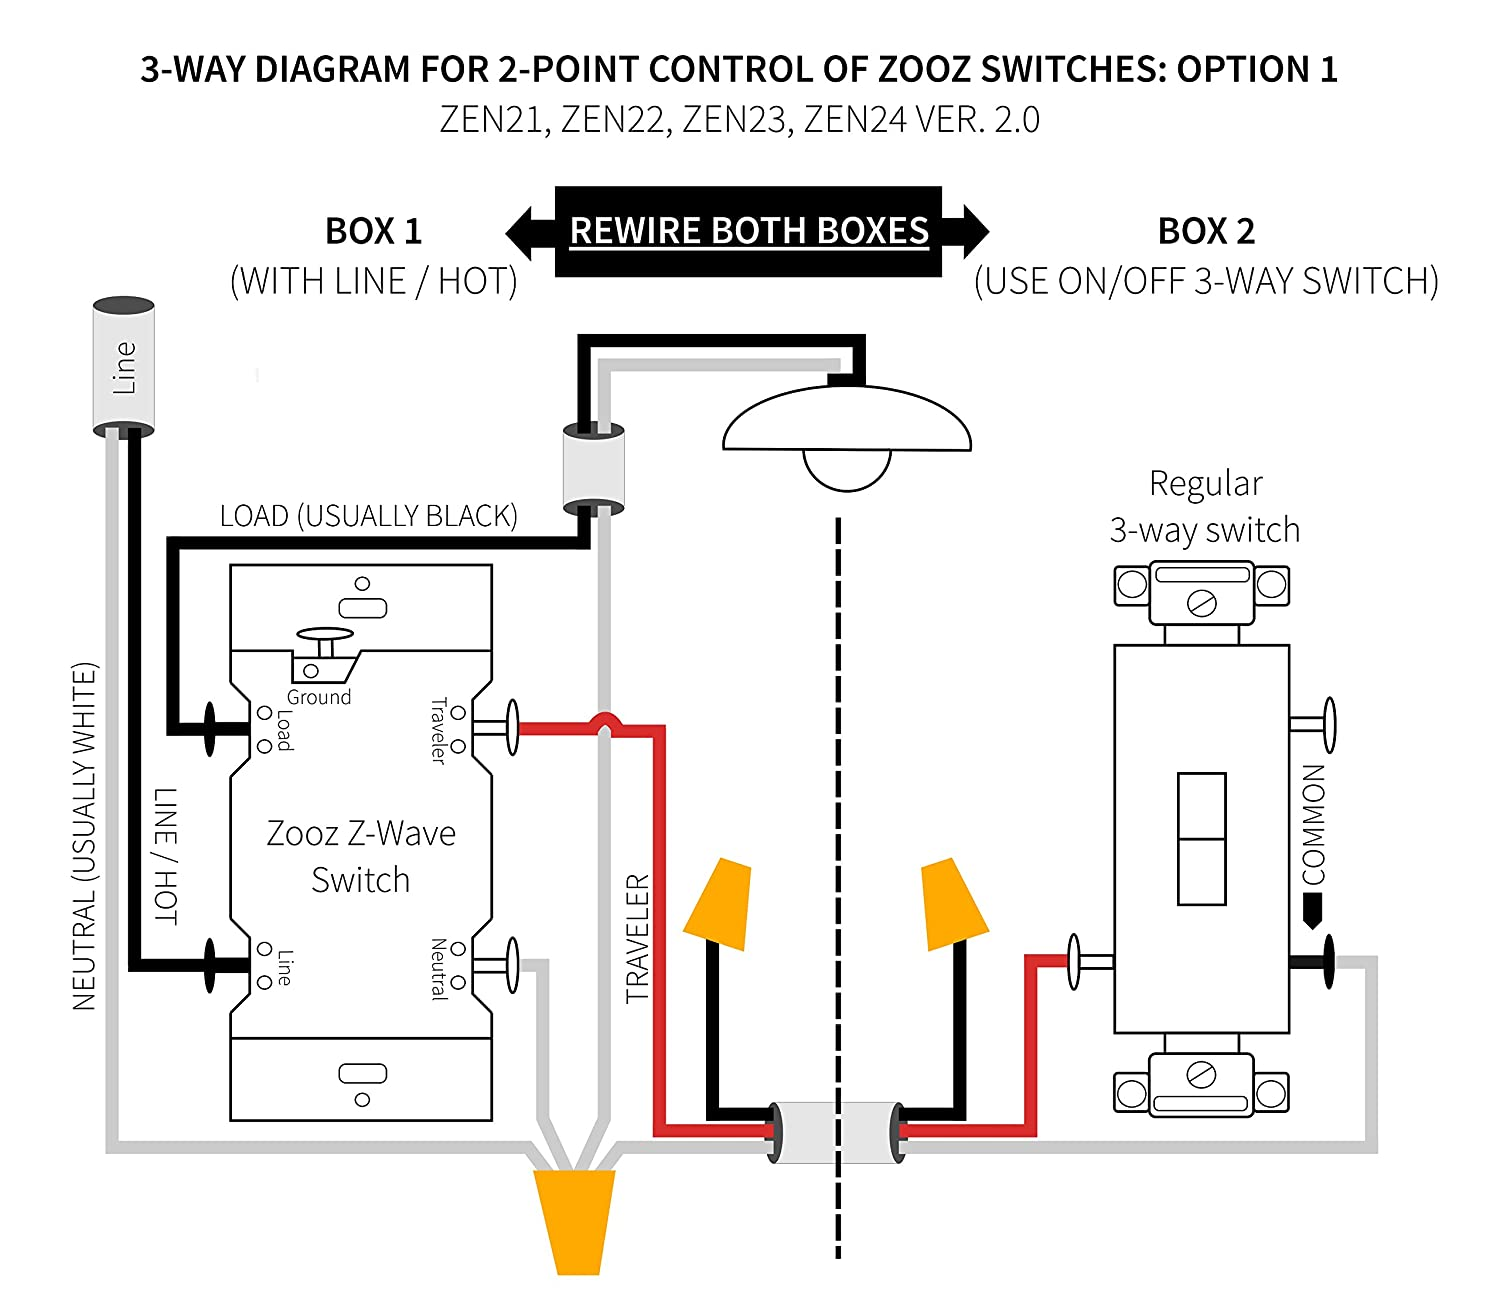 Zooz Z Wave Plus On Off Wall Switch Zen21 White Ver 20 Works 2 Way Wiring Diagram With Existing Regular 3